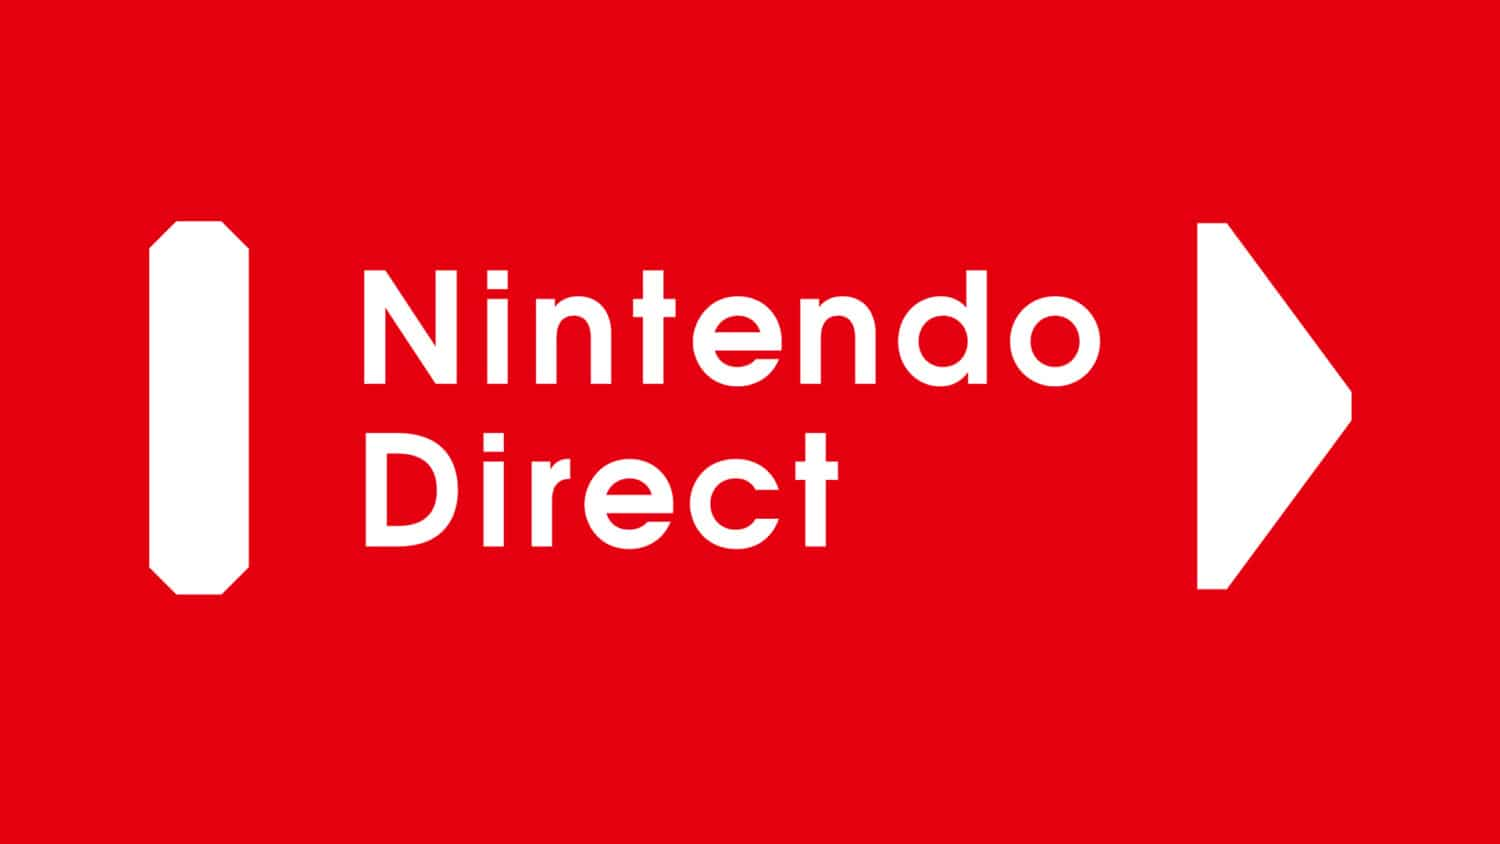 King Zell – The Nintendo Direct On July 20 is a General Direct